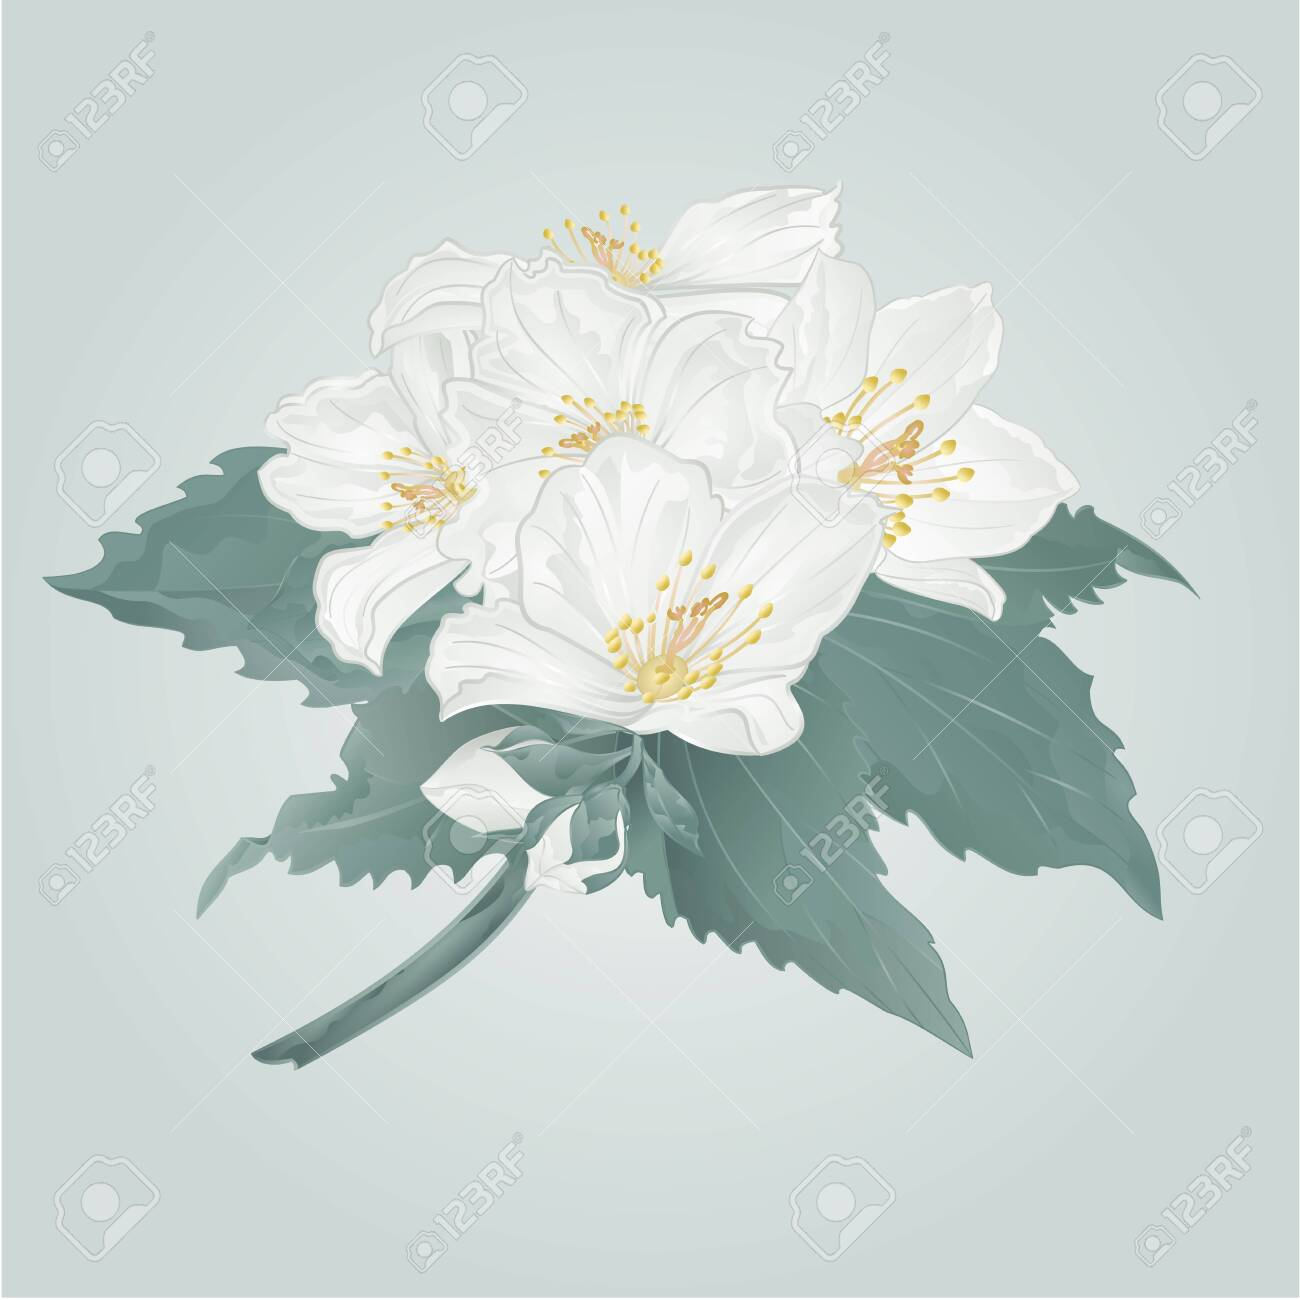 Jasmine flowers and buds twig on a blue background watercolor vintage vector illustration editable hand draw - 142774456